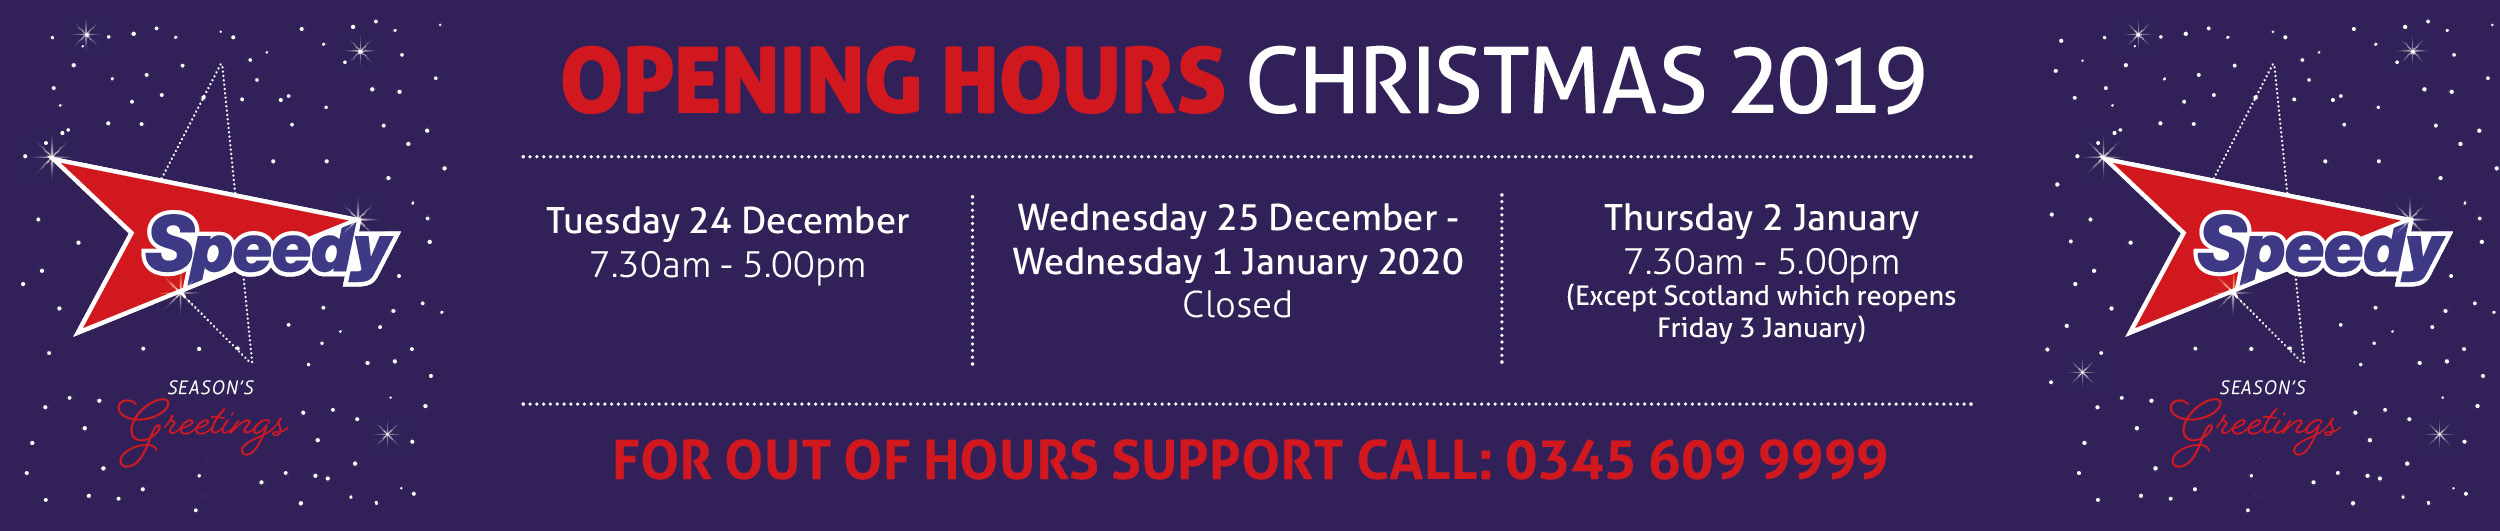 Christmas Opening Times Web banner.jpg